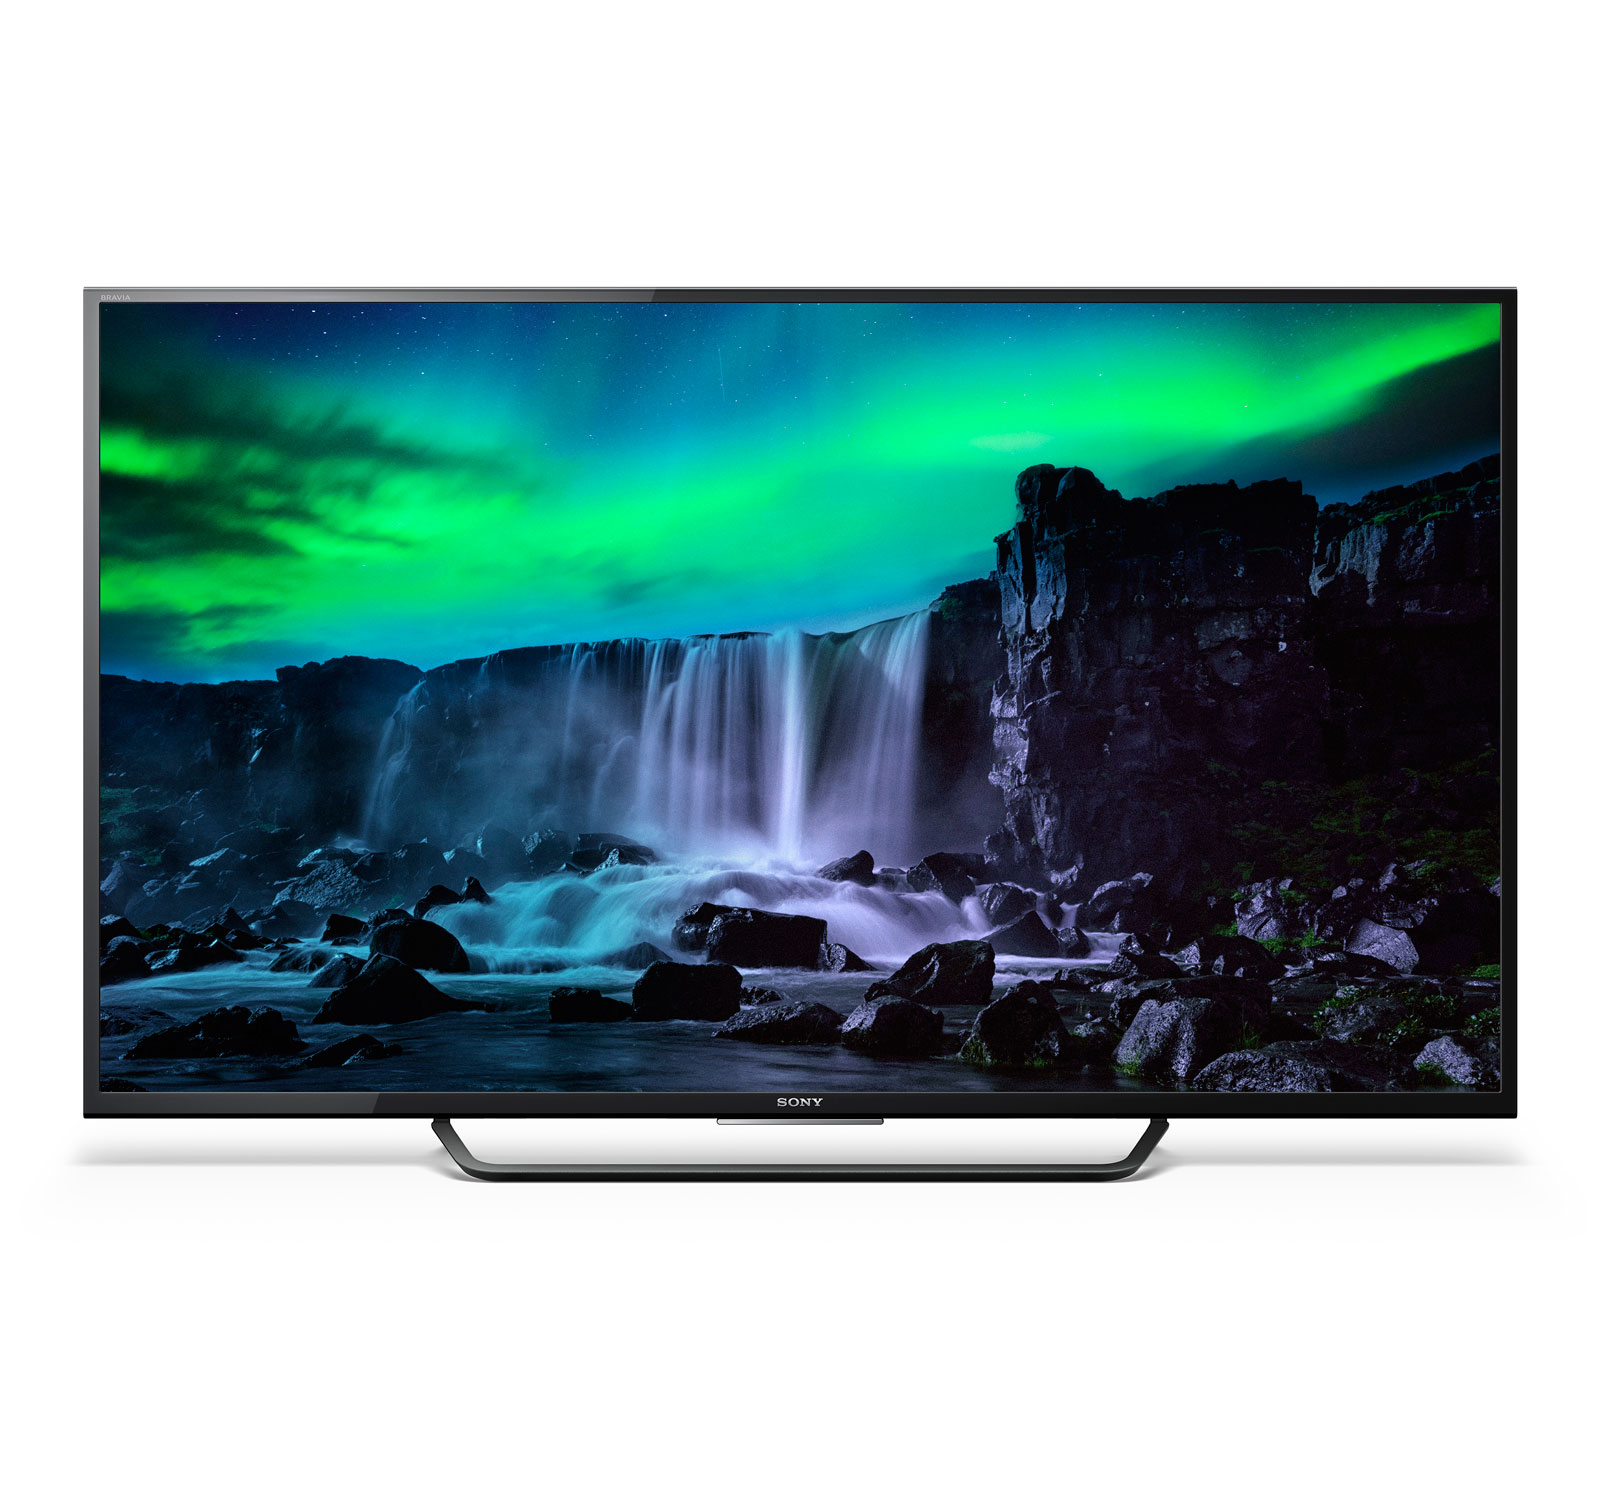 Sony XBR55X810C 55-inch 4K UHD LED Smart TV